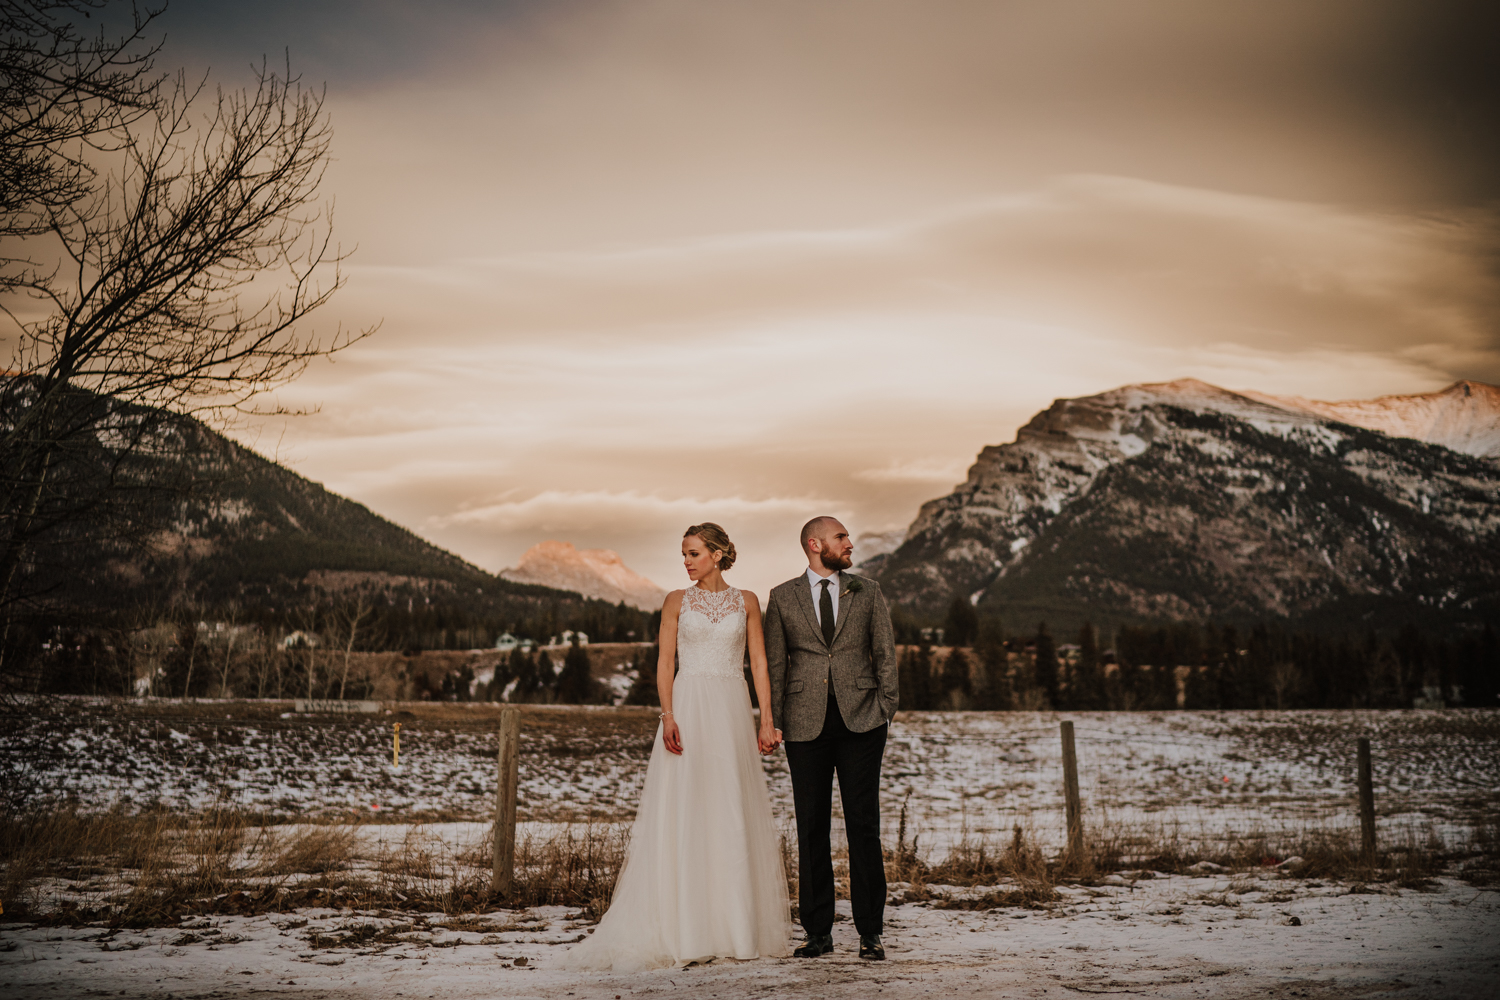 Canmore-Wedding-Photographer-68.jpg